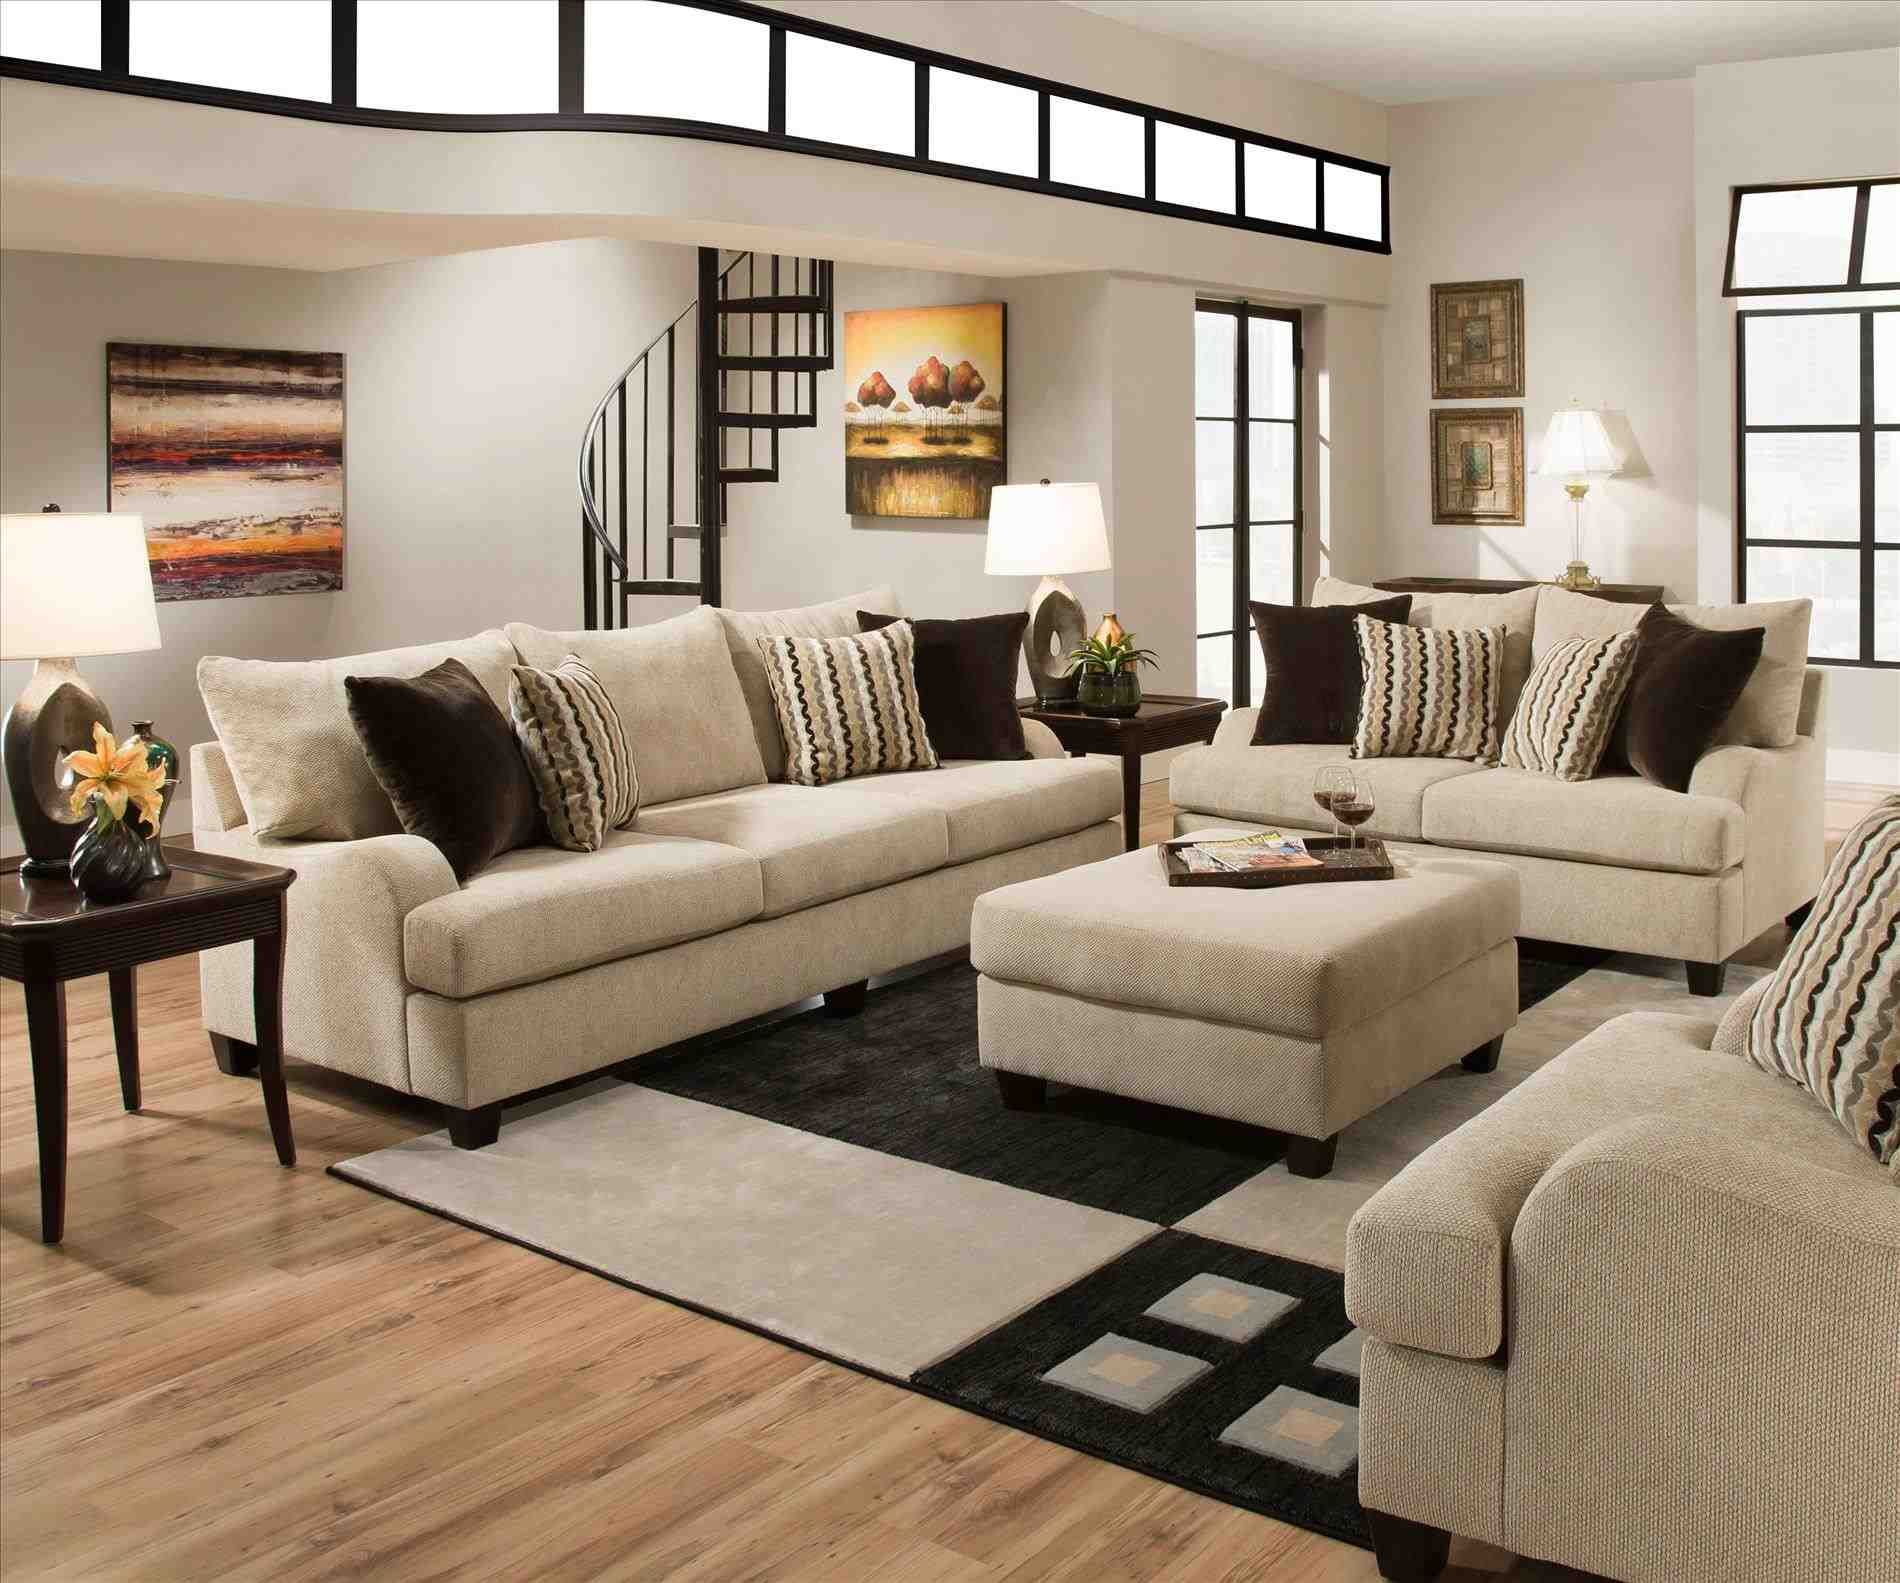 Cheap Living Room Furniture Ideas  nice living room